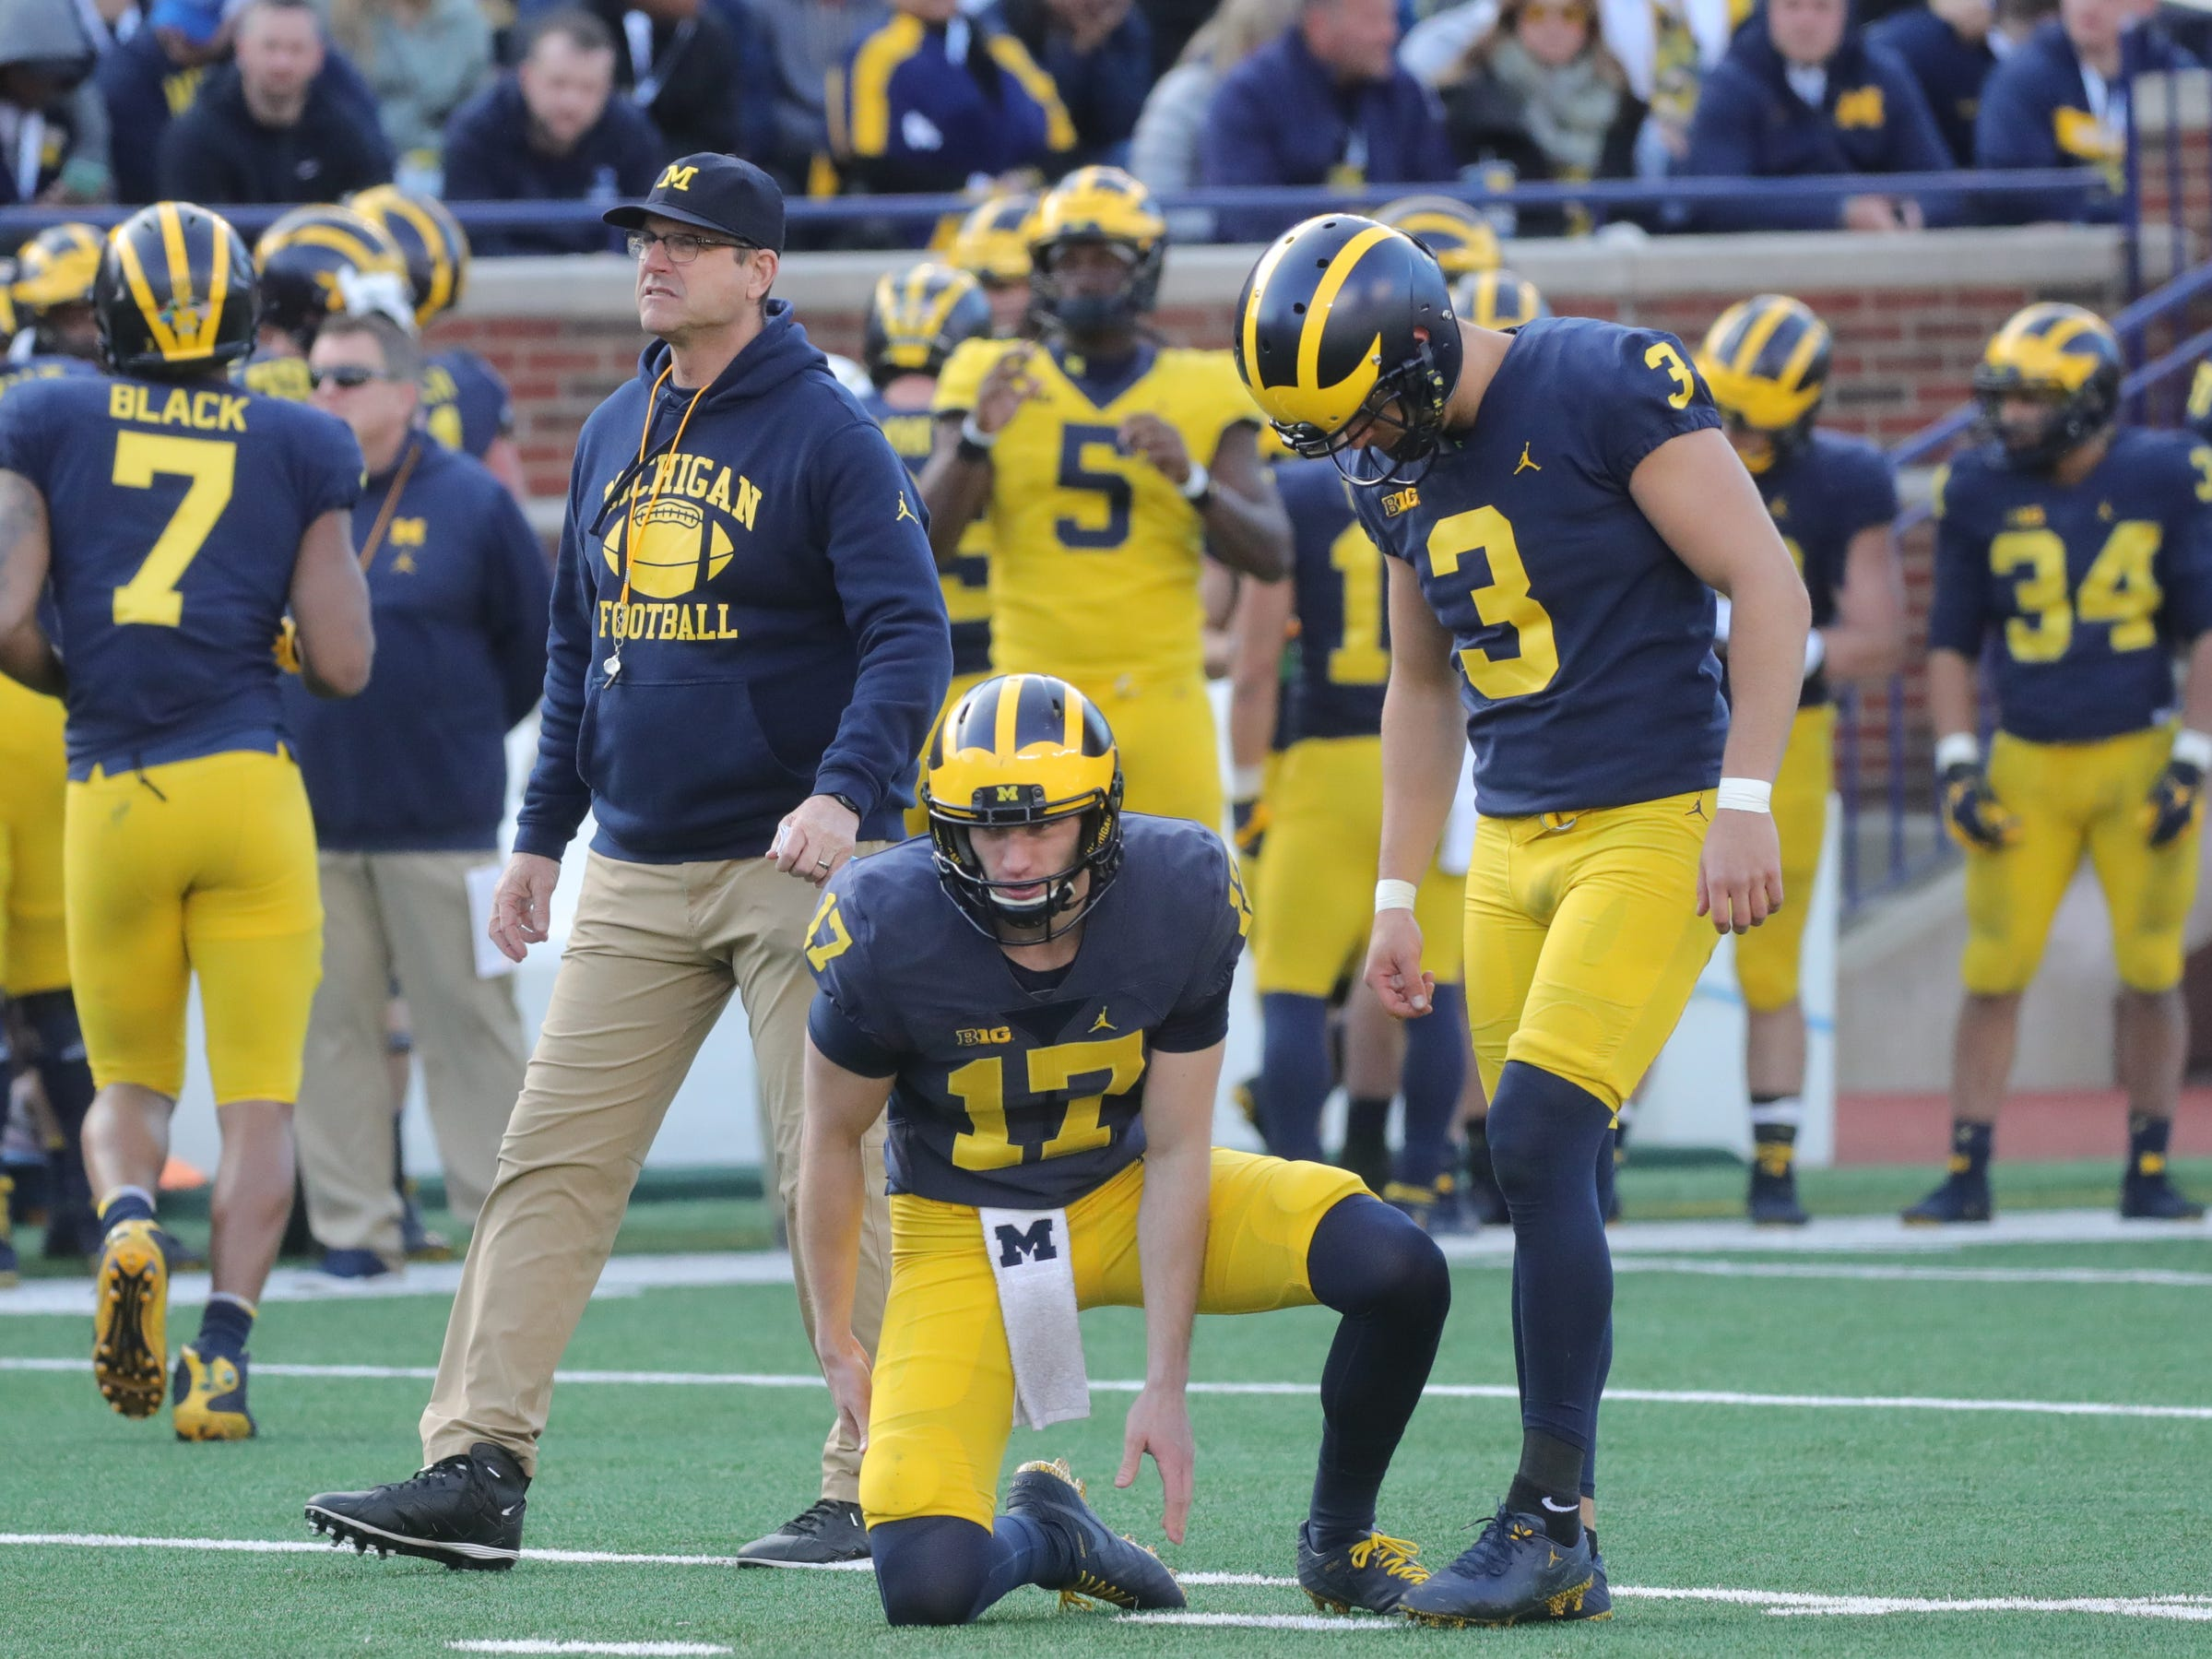 Jim Harbaugh walks by as Michigan holder Will Hart and kicker Quinn Nordin line up a field goal during the spring game Saturday, April 13, 2019 at Michigan Stadium in Ann Arbor.